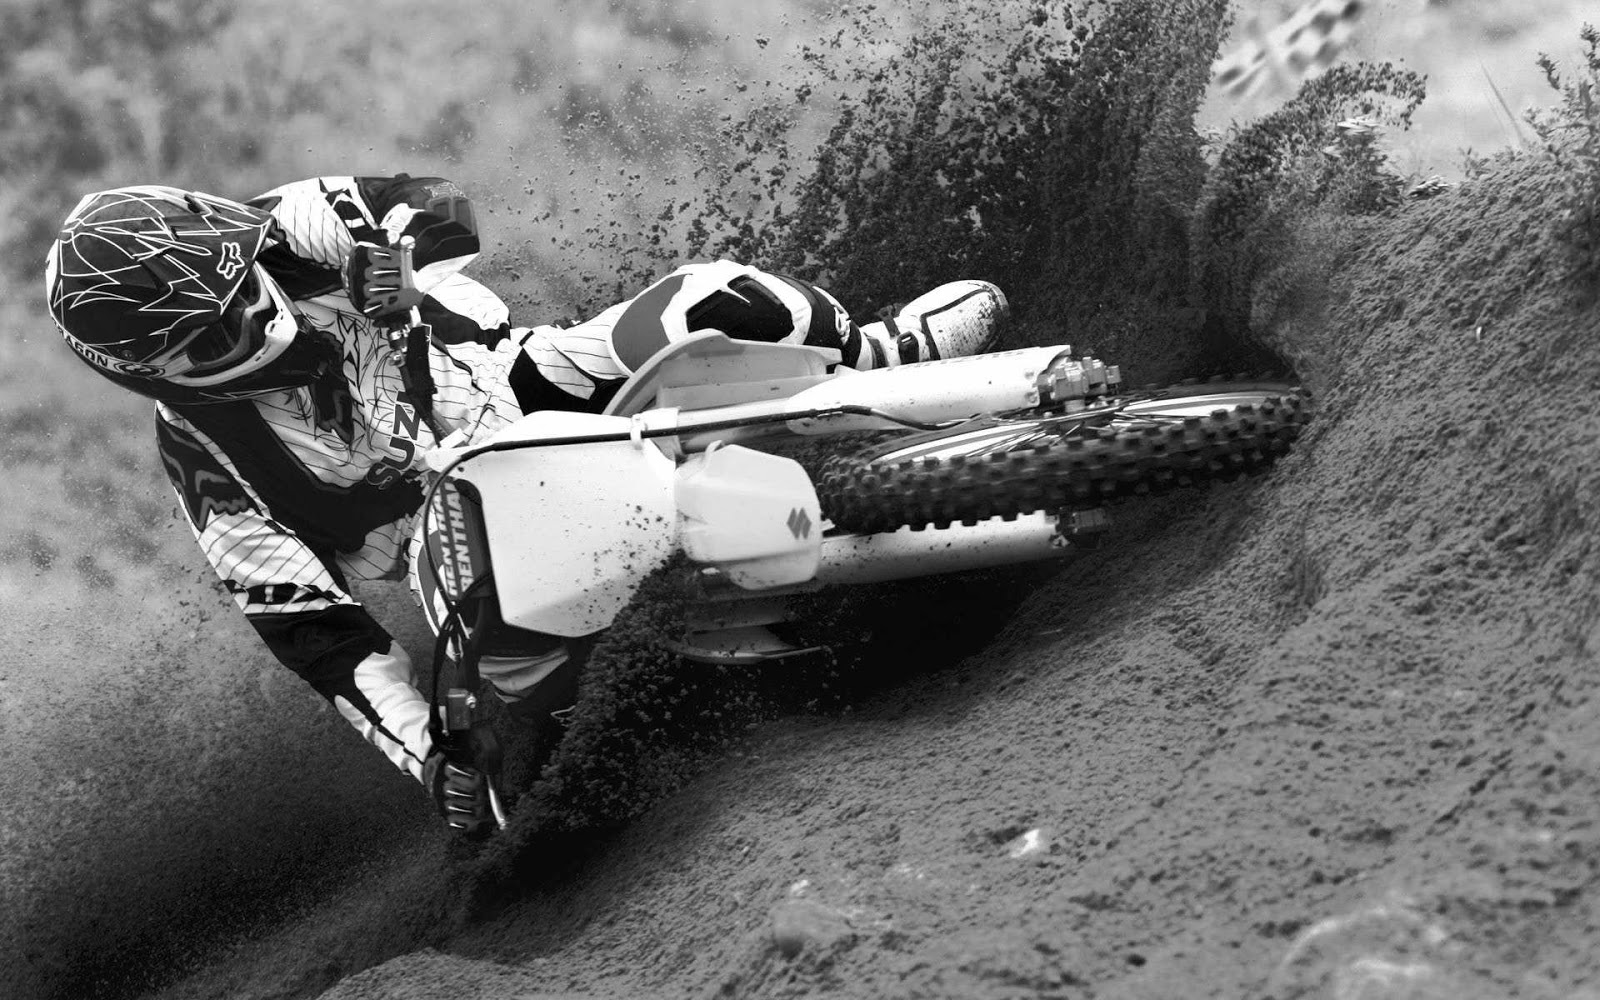 http://4.bp.blogspot.com/-V4XEdCe8gs8/UH5qEE2zi2I/AAAAAAAADxY/Ei6yBvxFfGs/s1600/dirt-bike-black-and-white-wallpaper-03.jpg